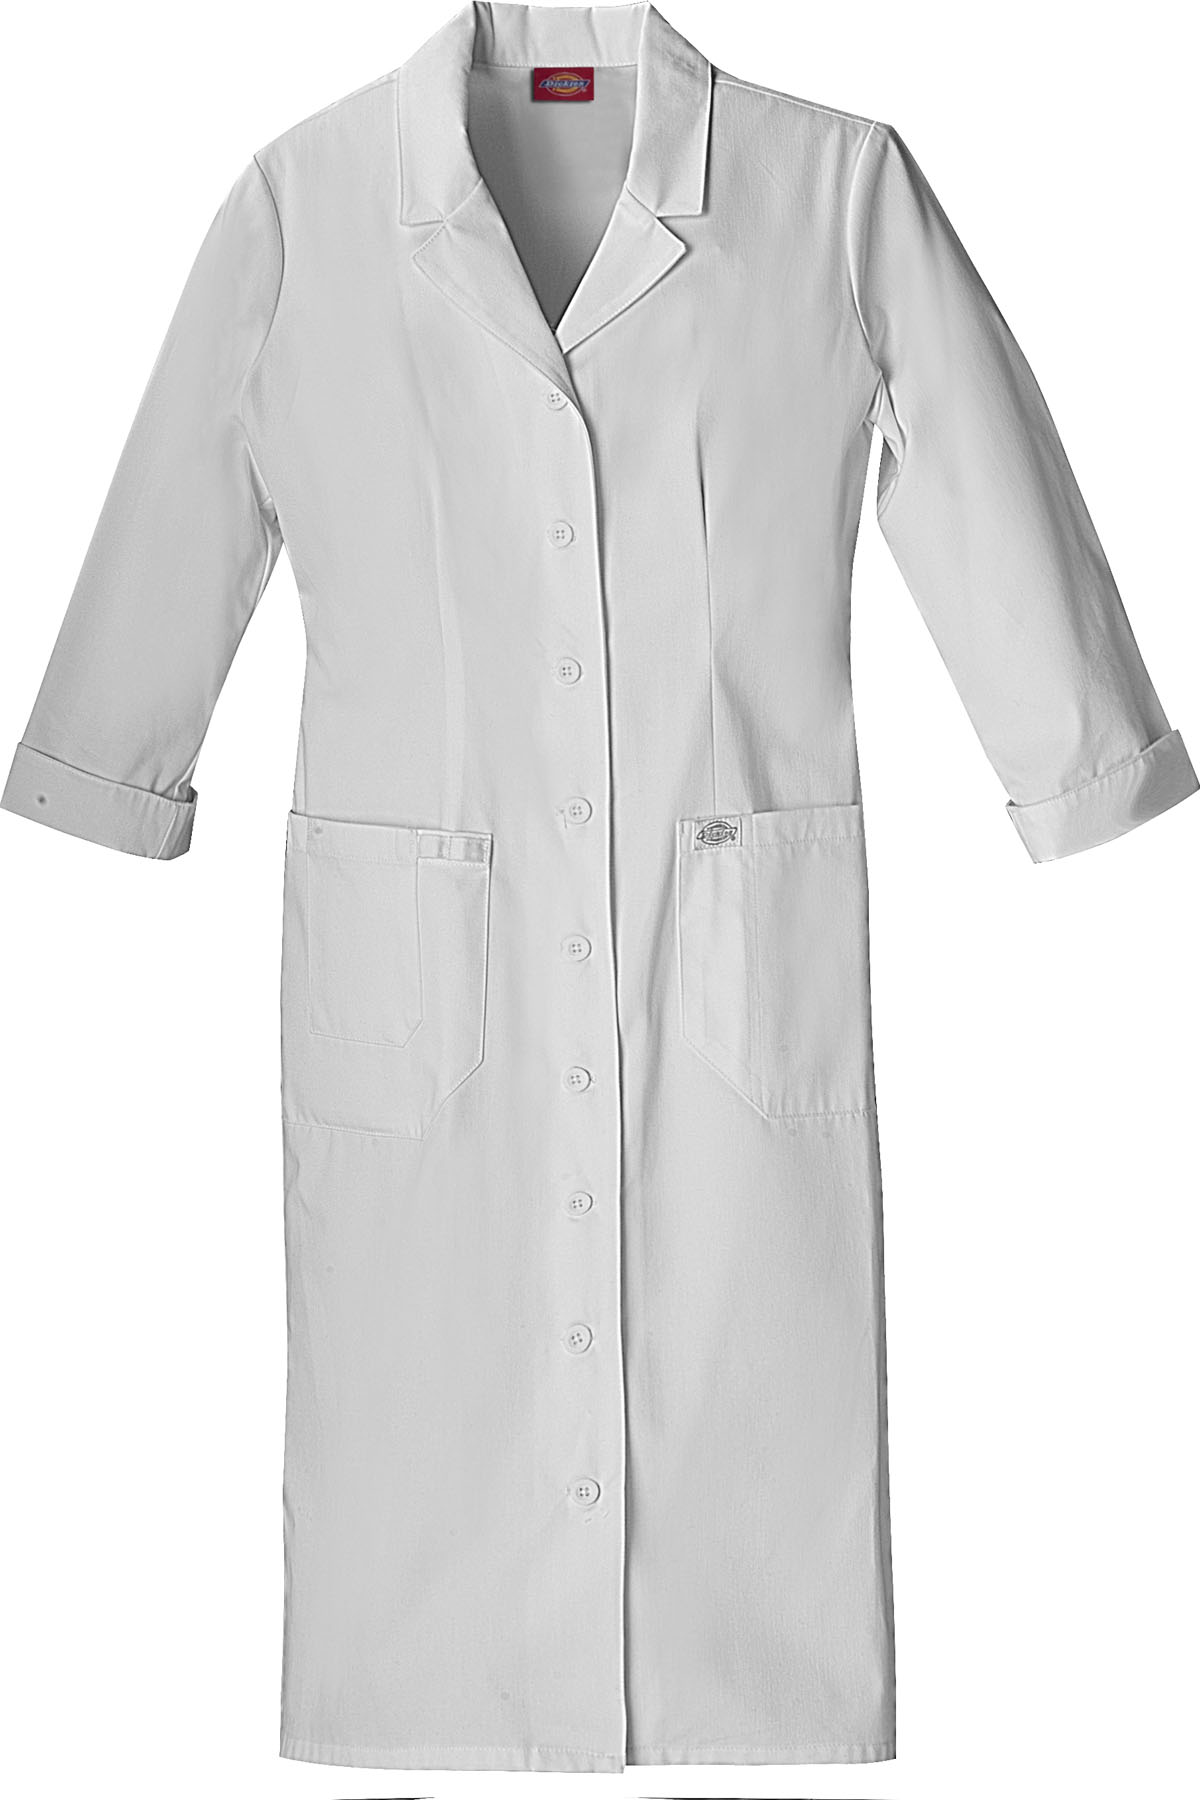 1ab87559bec5e Dickies EDS Signature Whites Button Front Dress